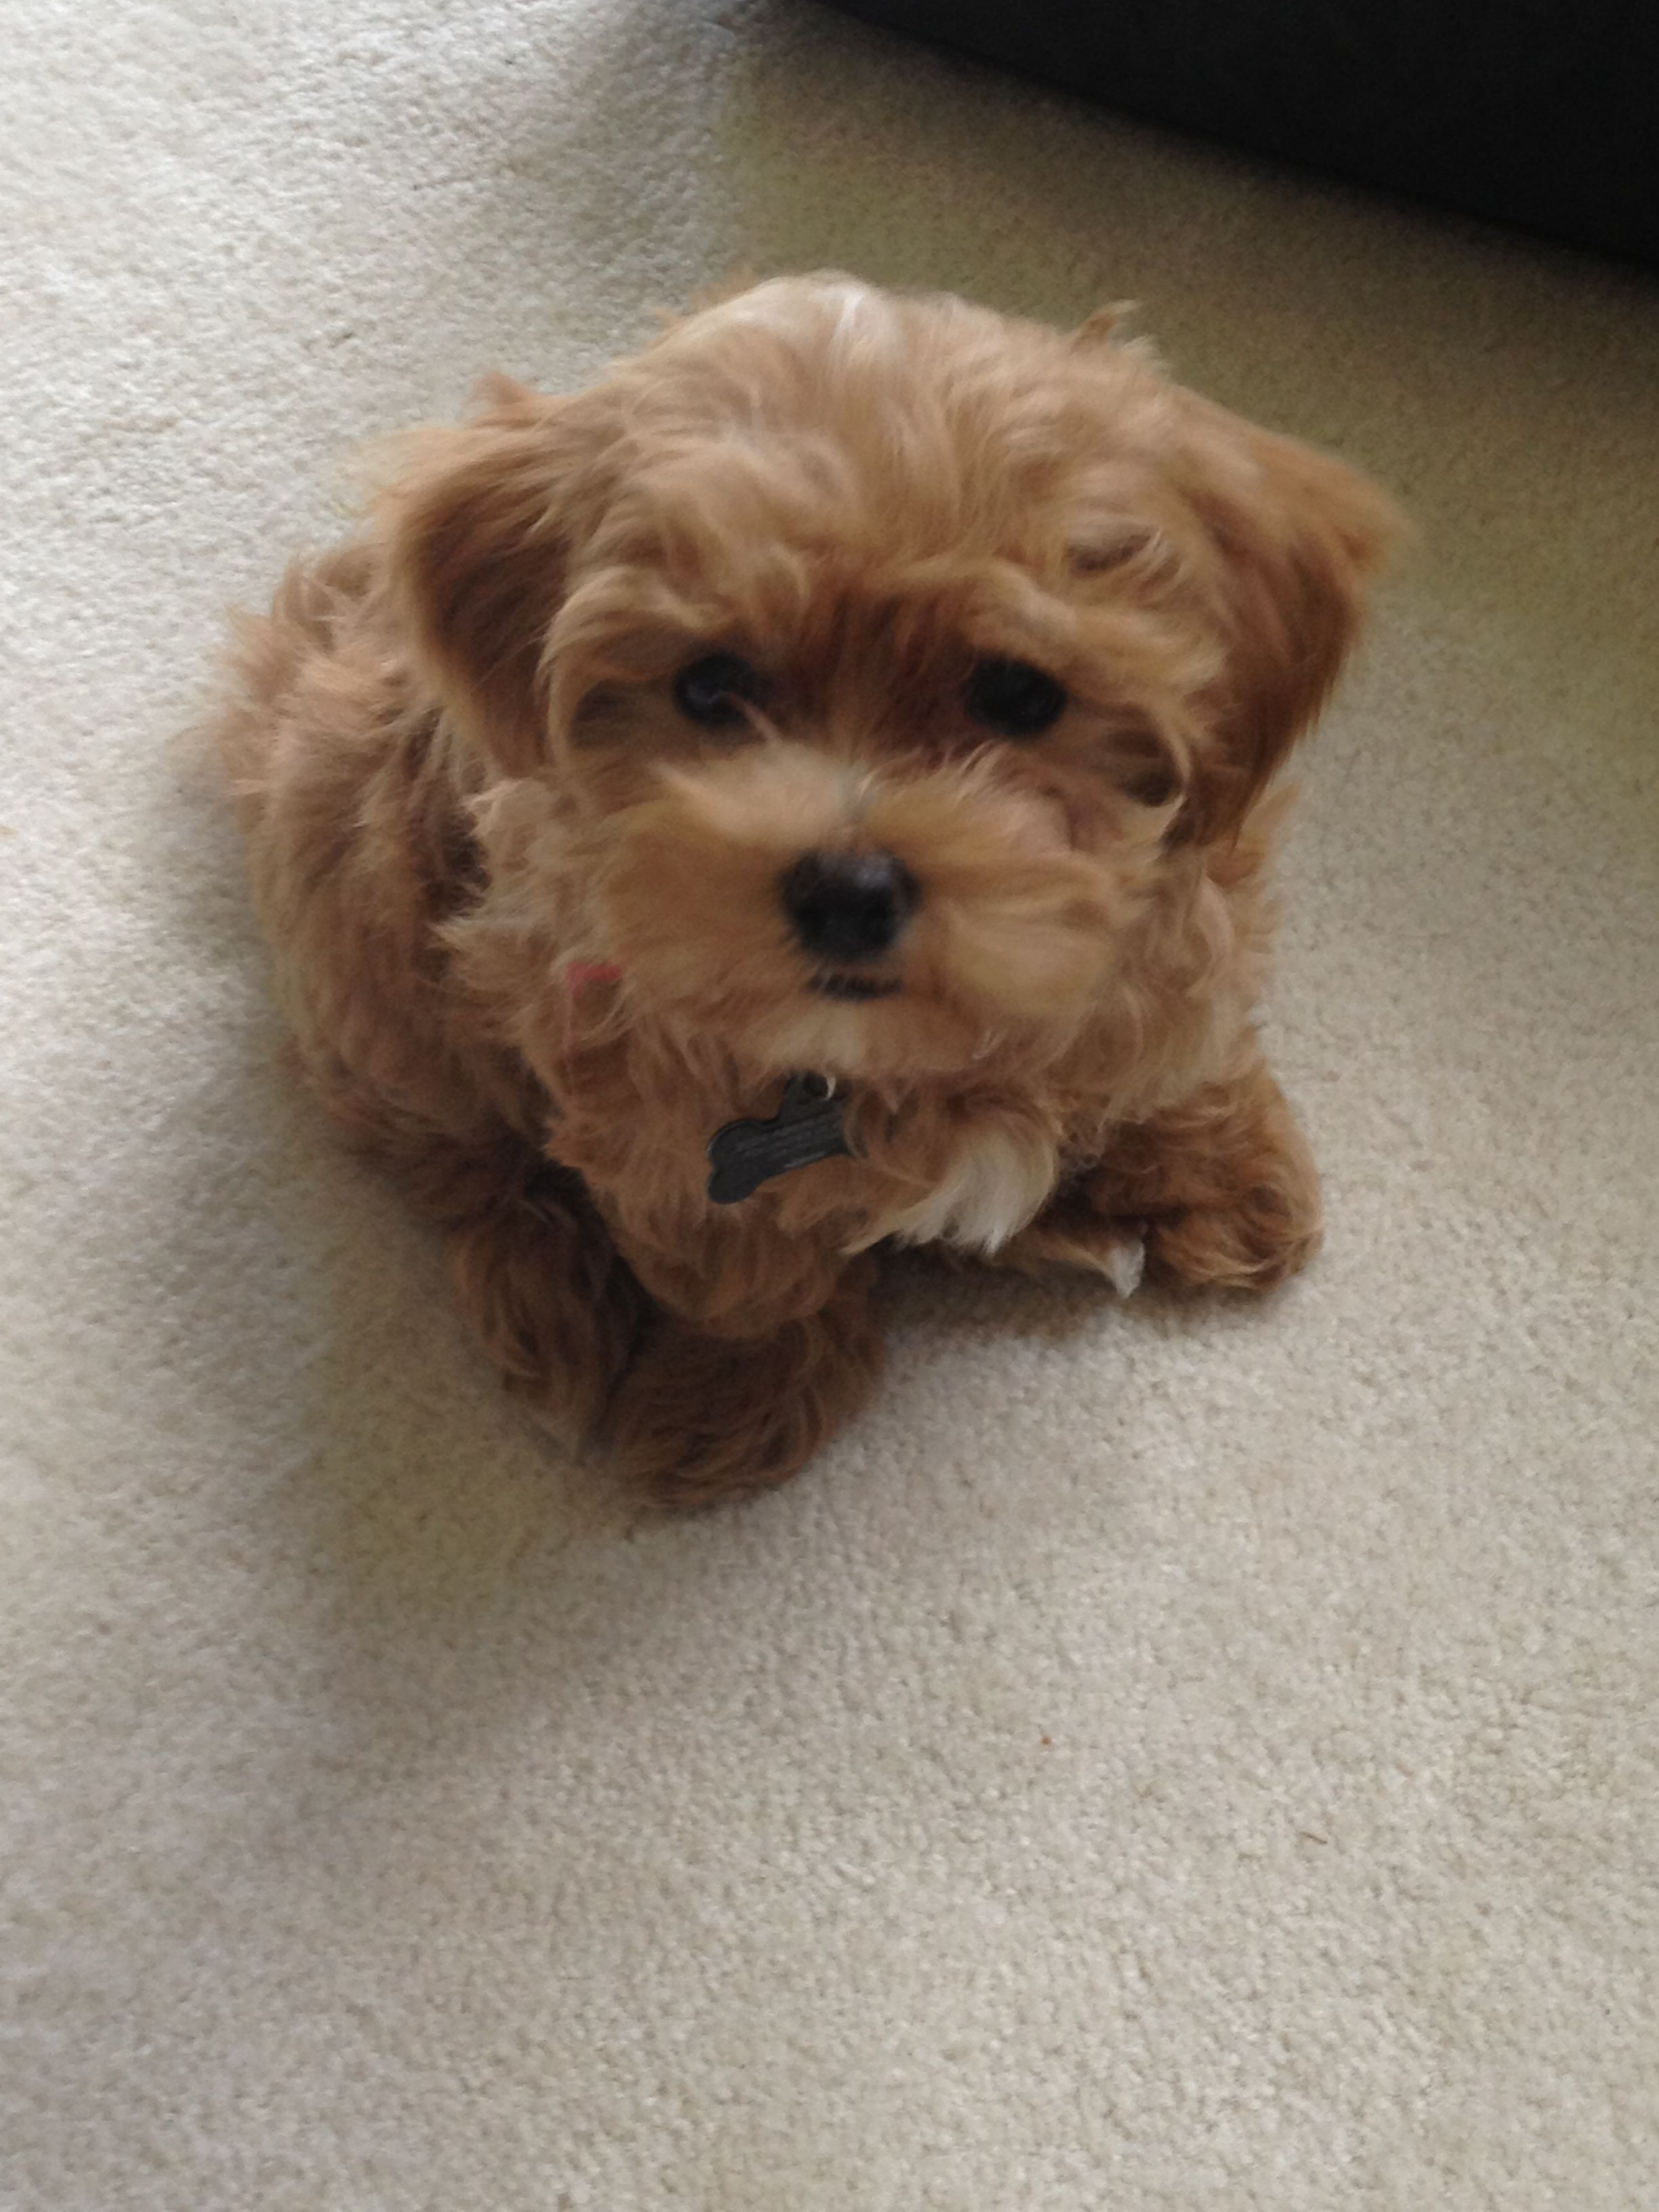 Pin By Caitlyn Hubbard On Randoms Maltipoo Puppy Puppies And Kitties Cute Dogs